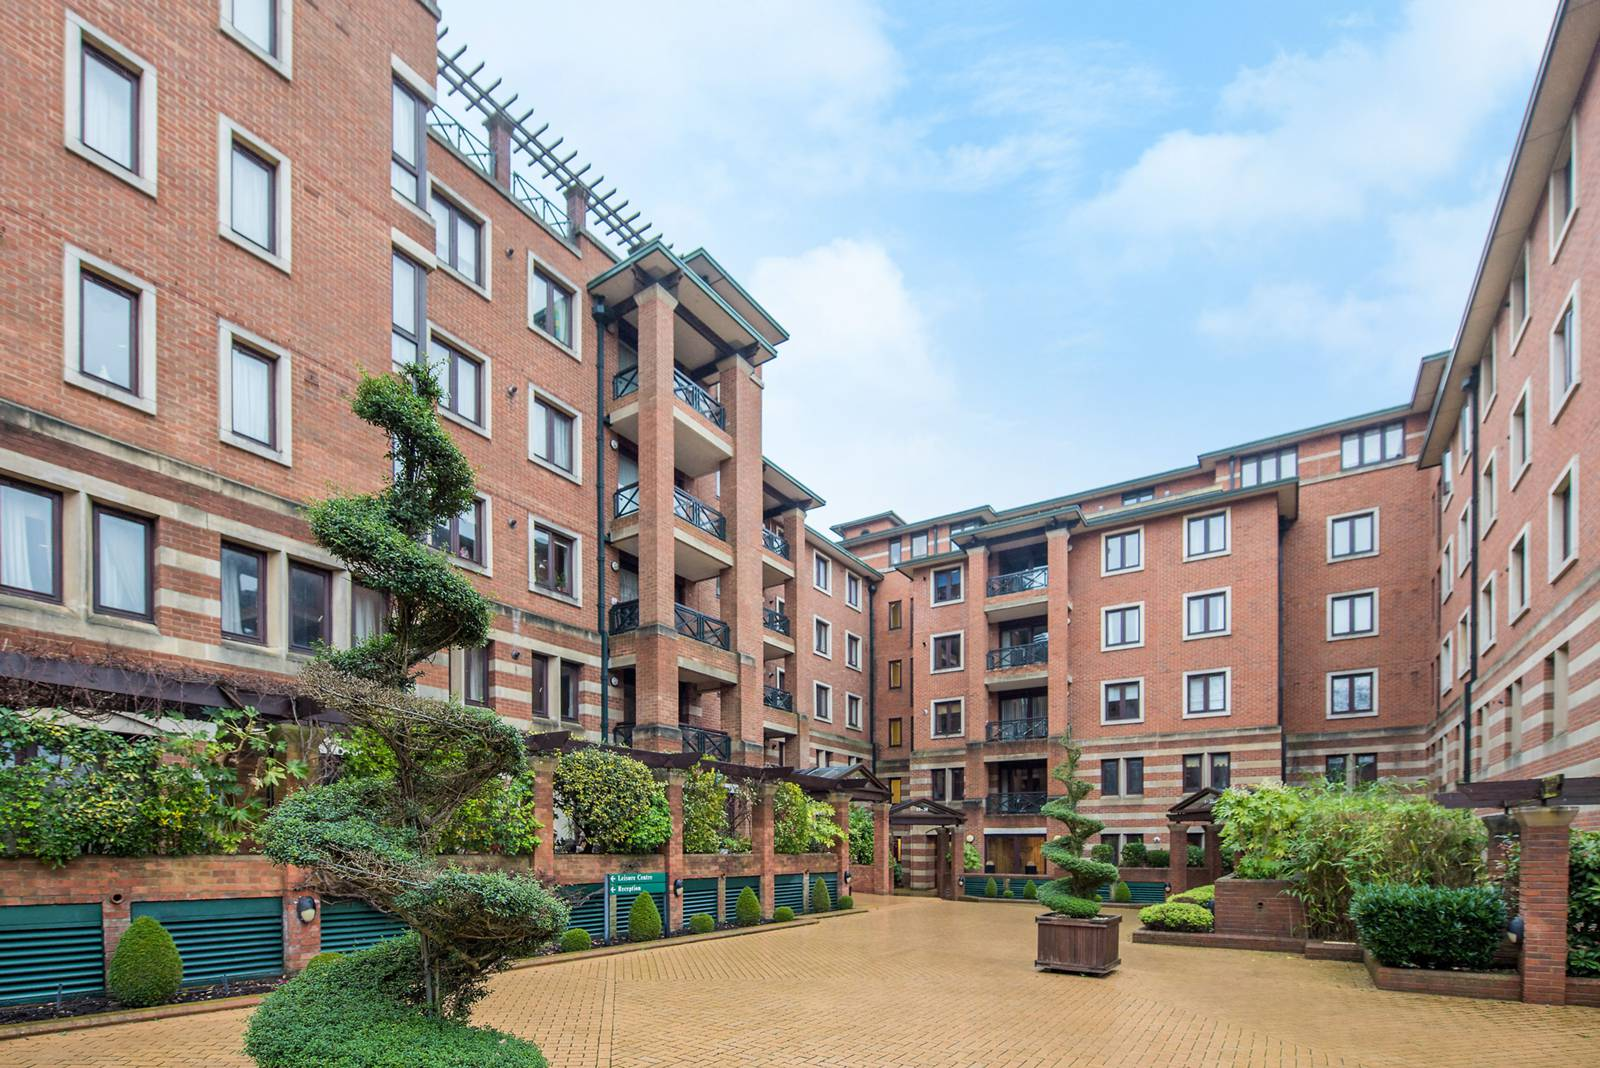 Properties For Sale At Chasewood Park Harrow On The Hill